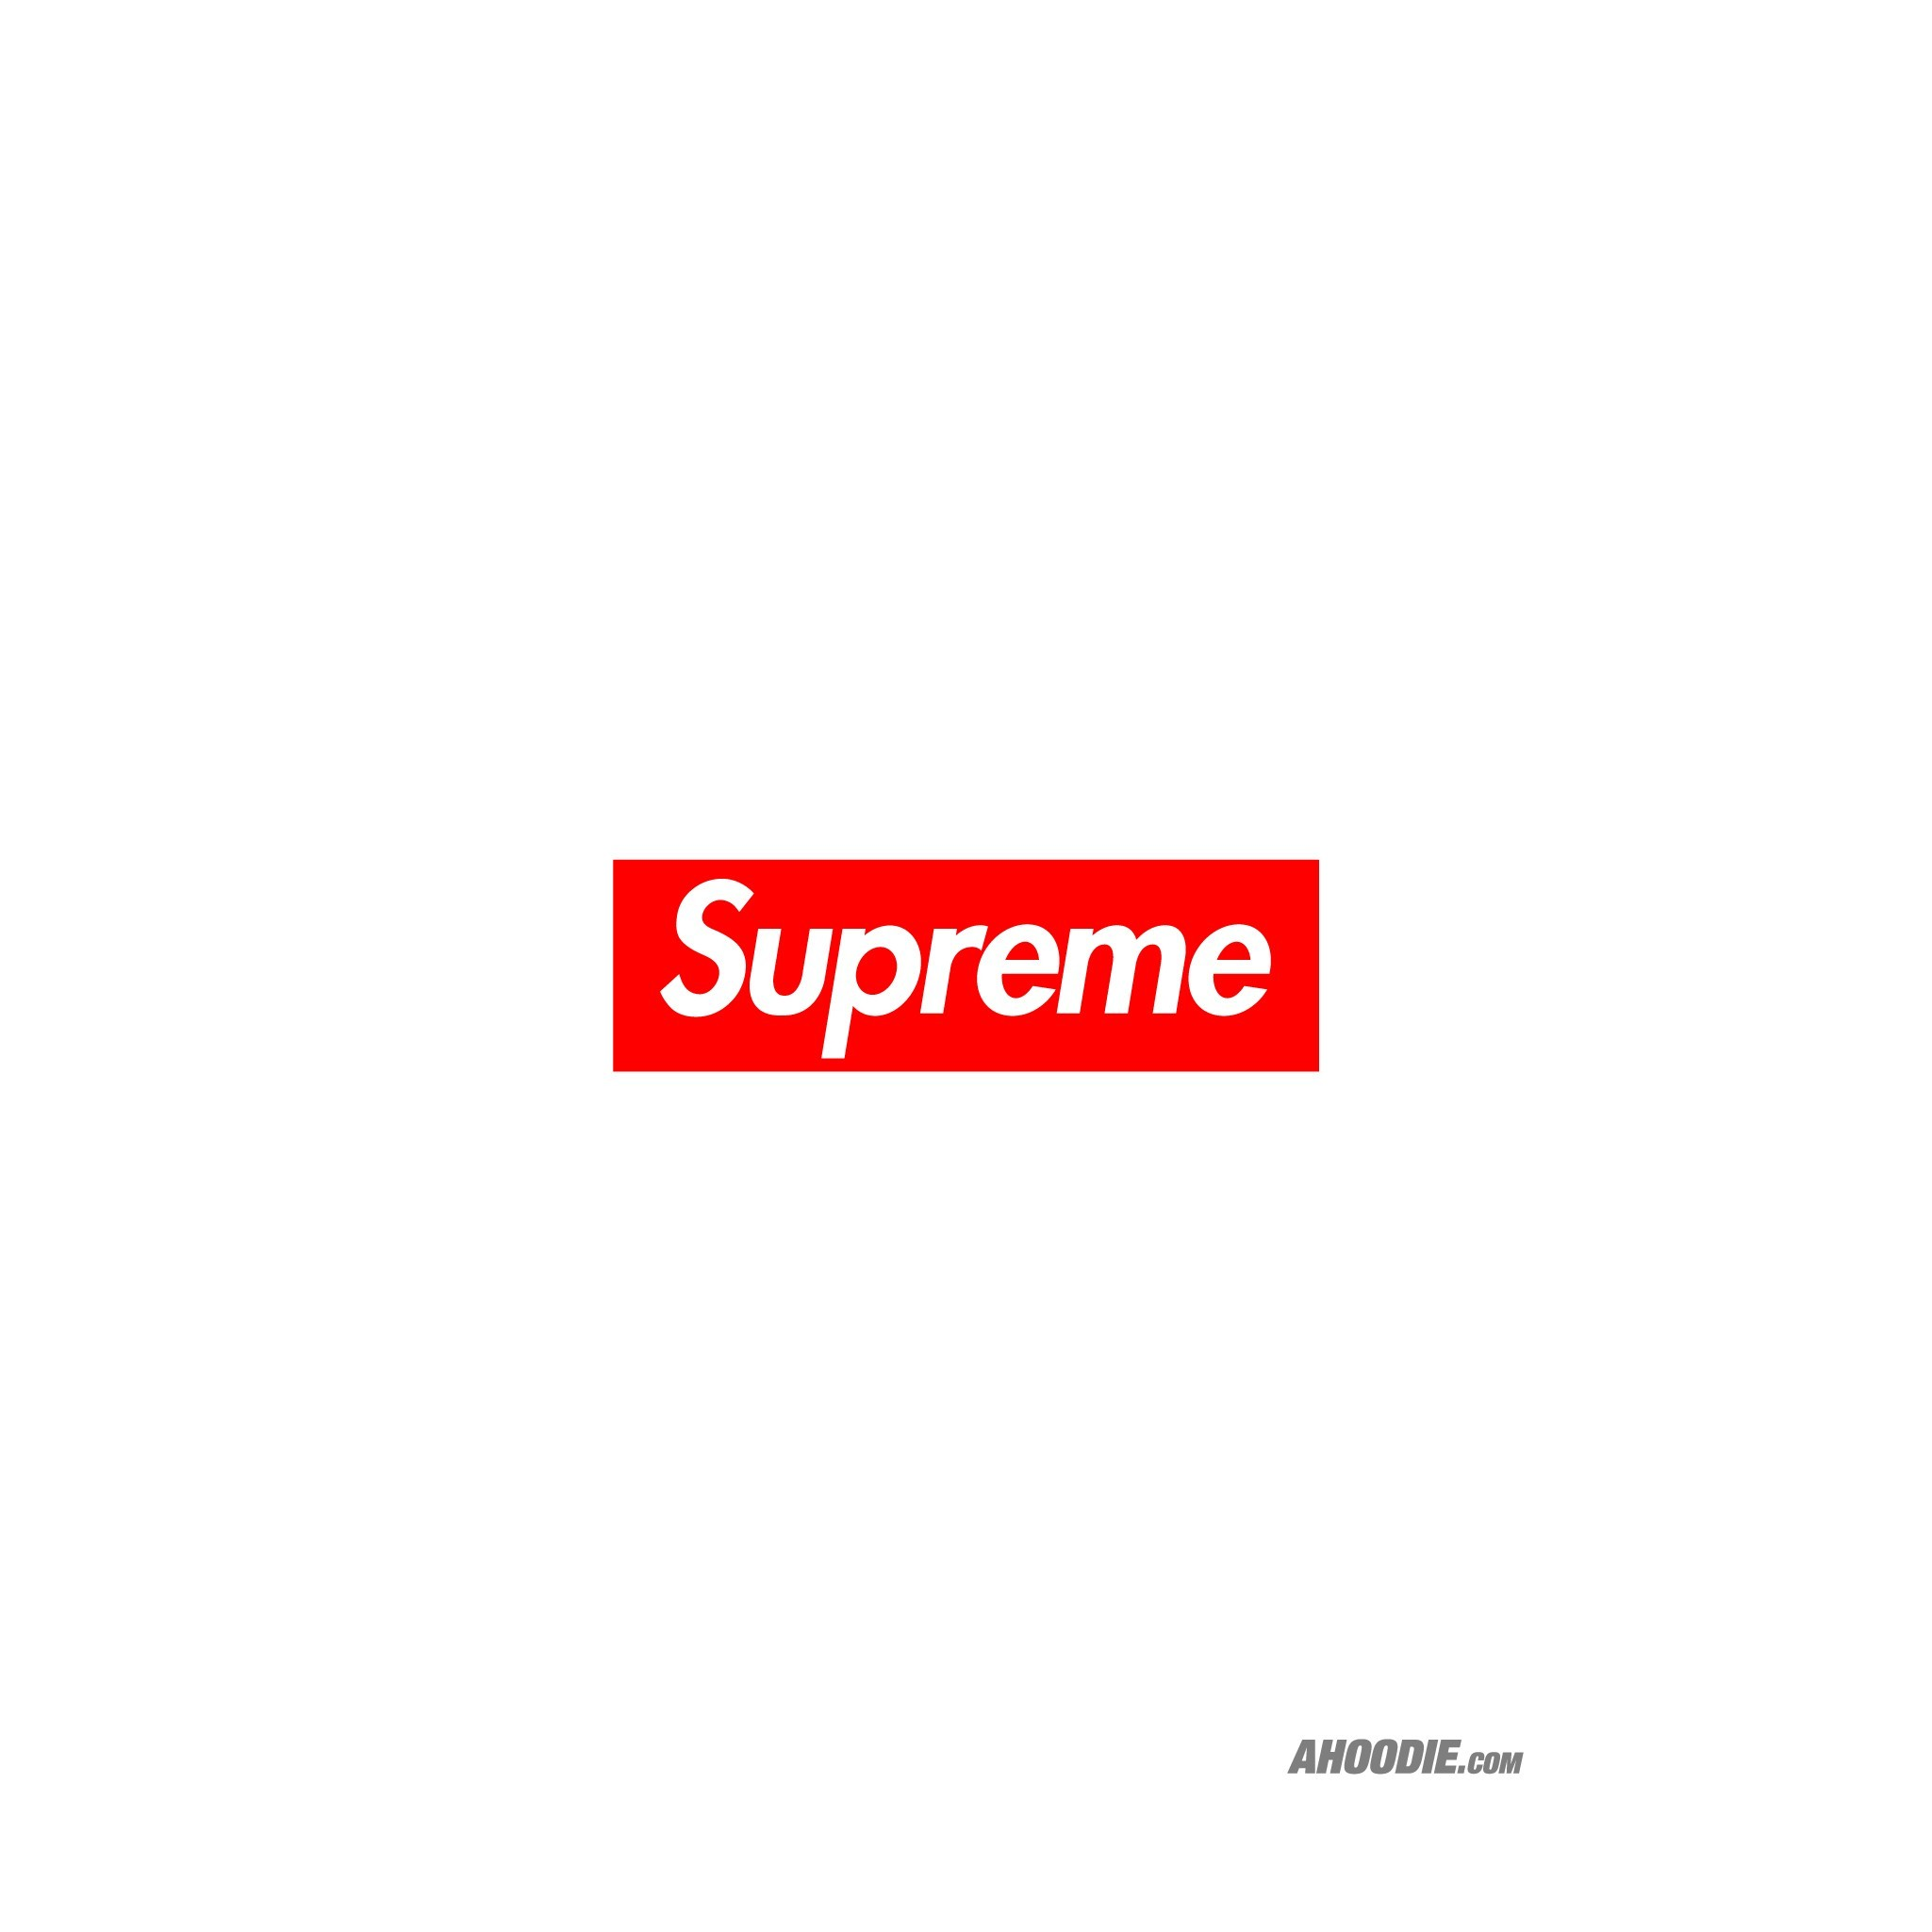 Supreme wallpapers 4k